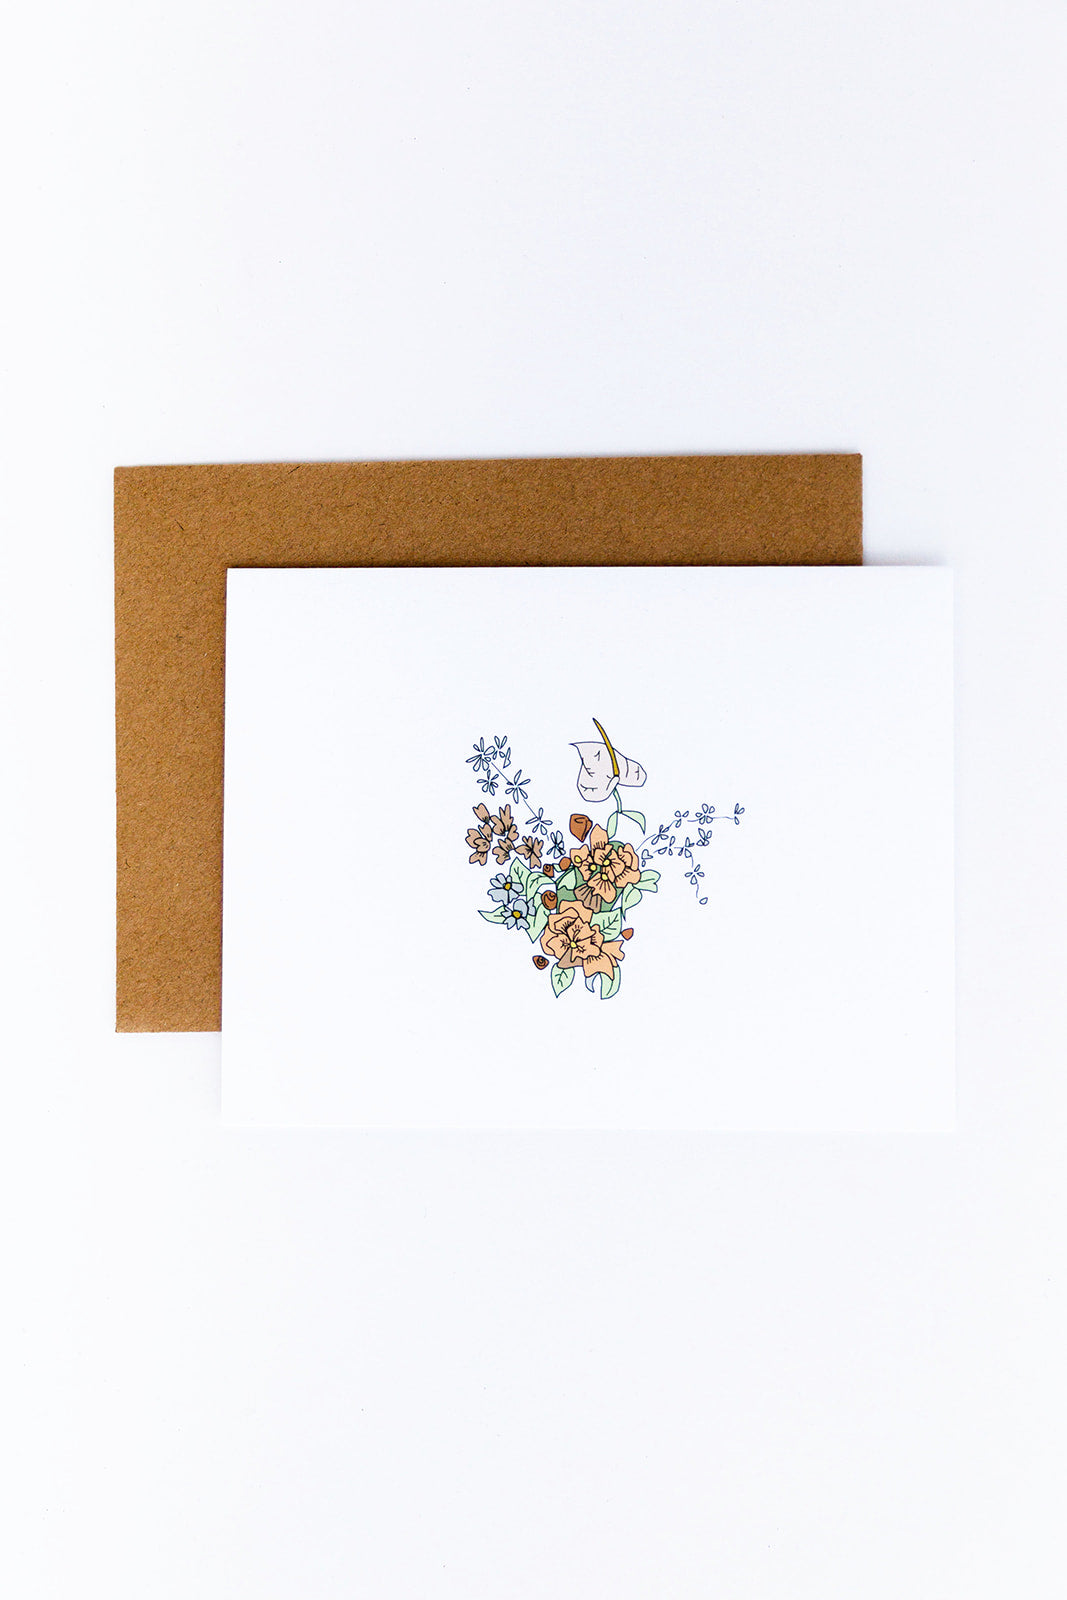 LIZ FRANCES STUDIO - BOUQUET CARD